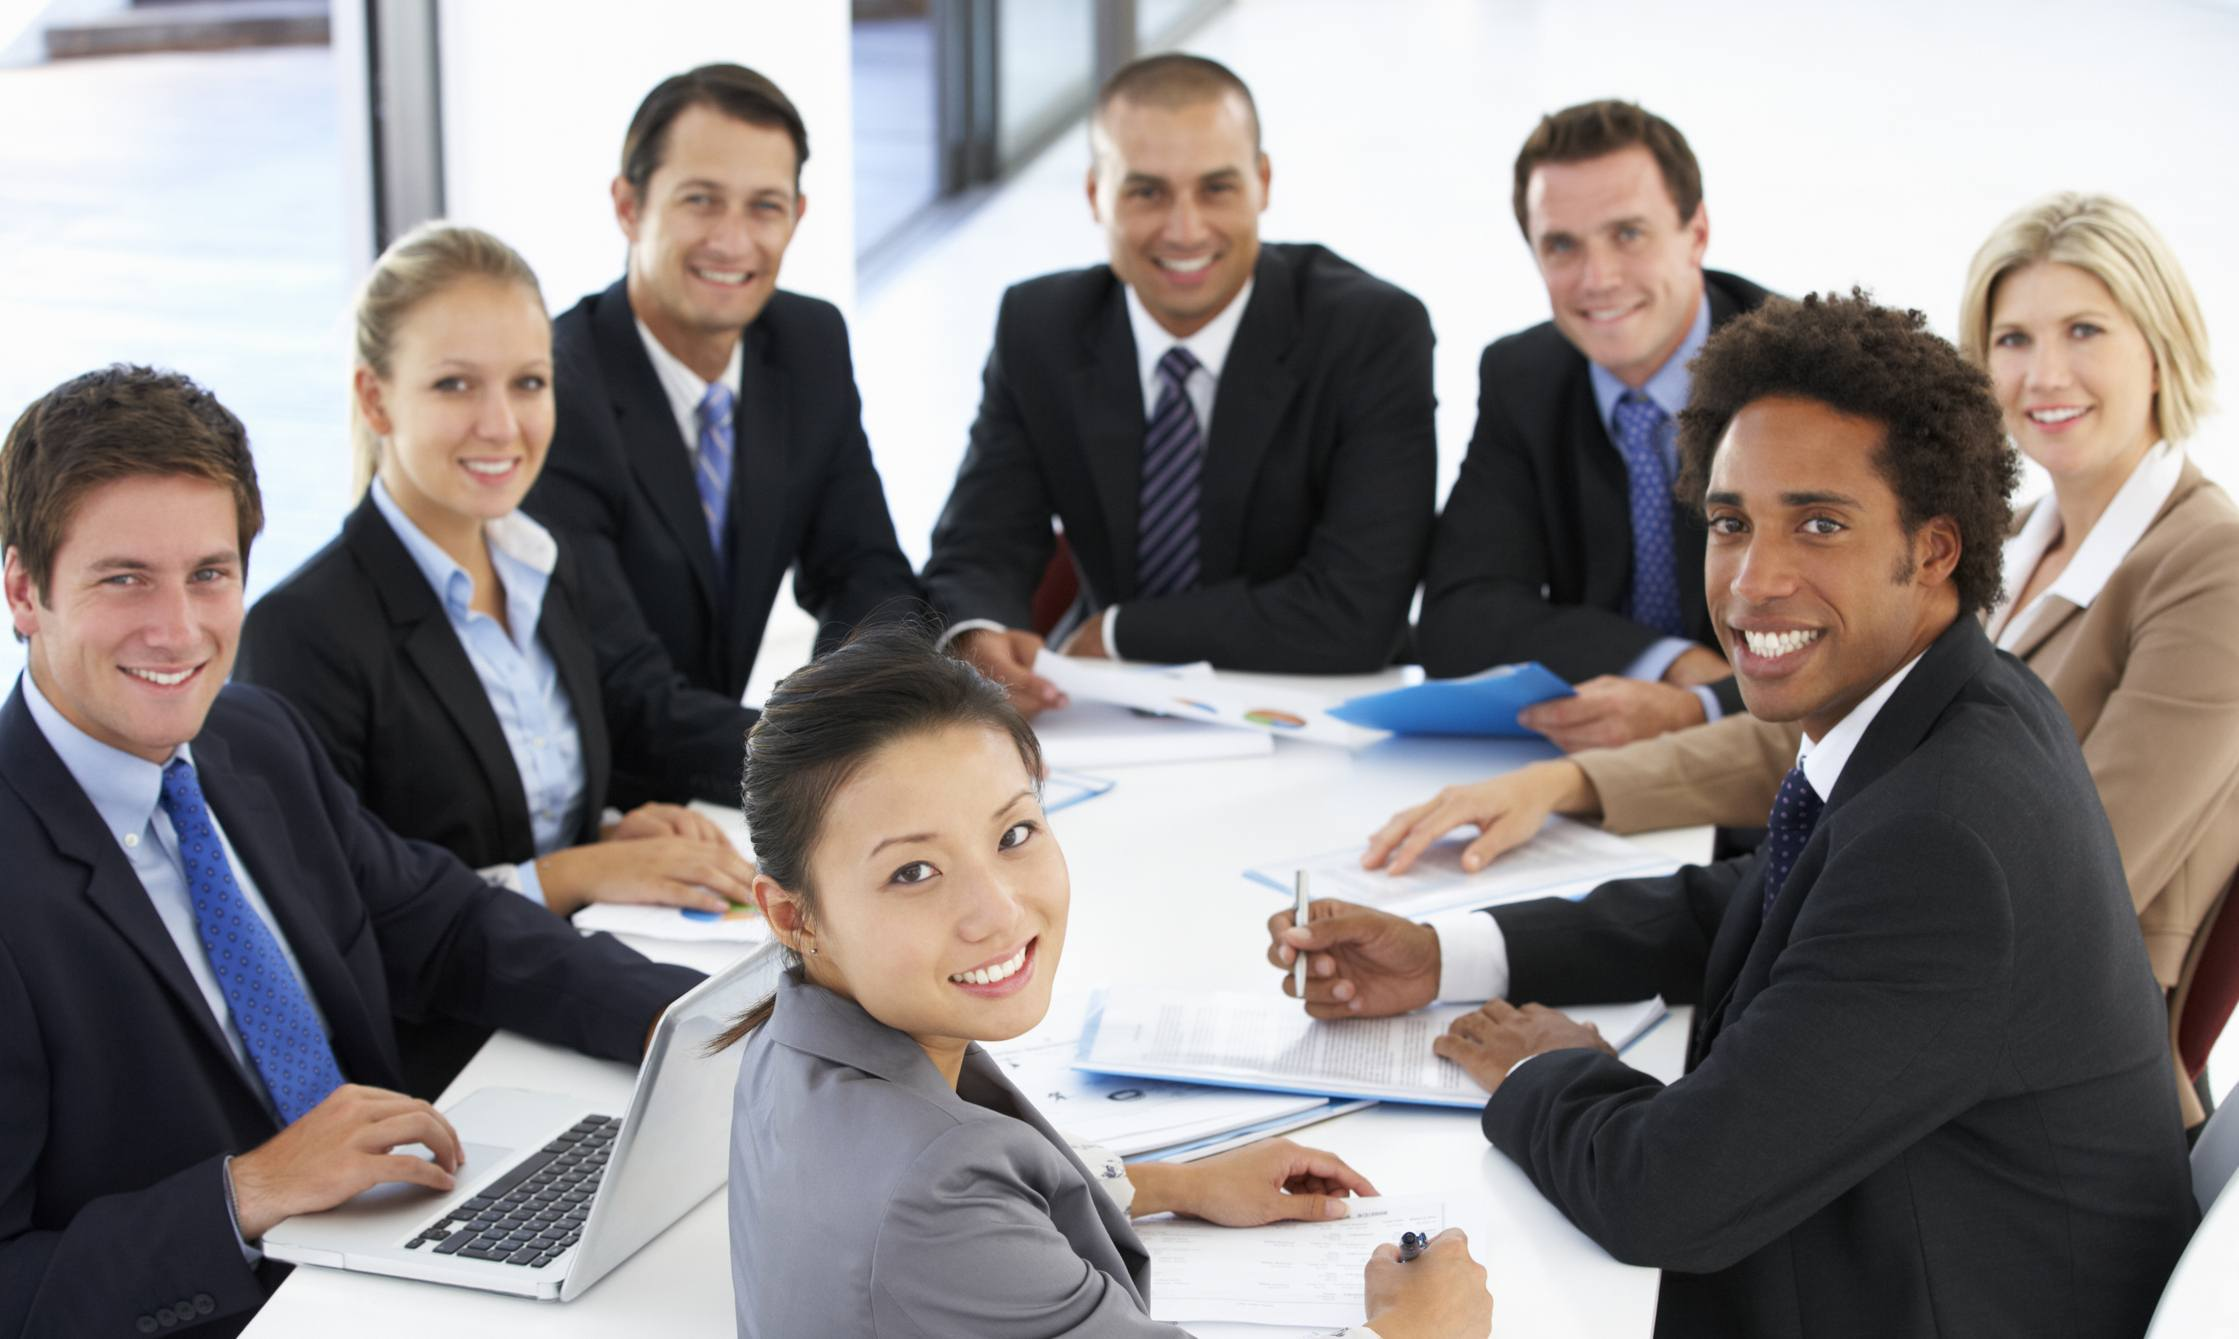 insurance brokers and agent